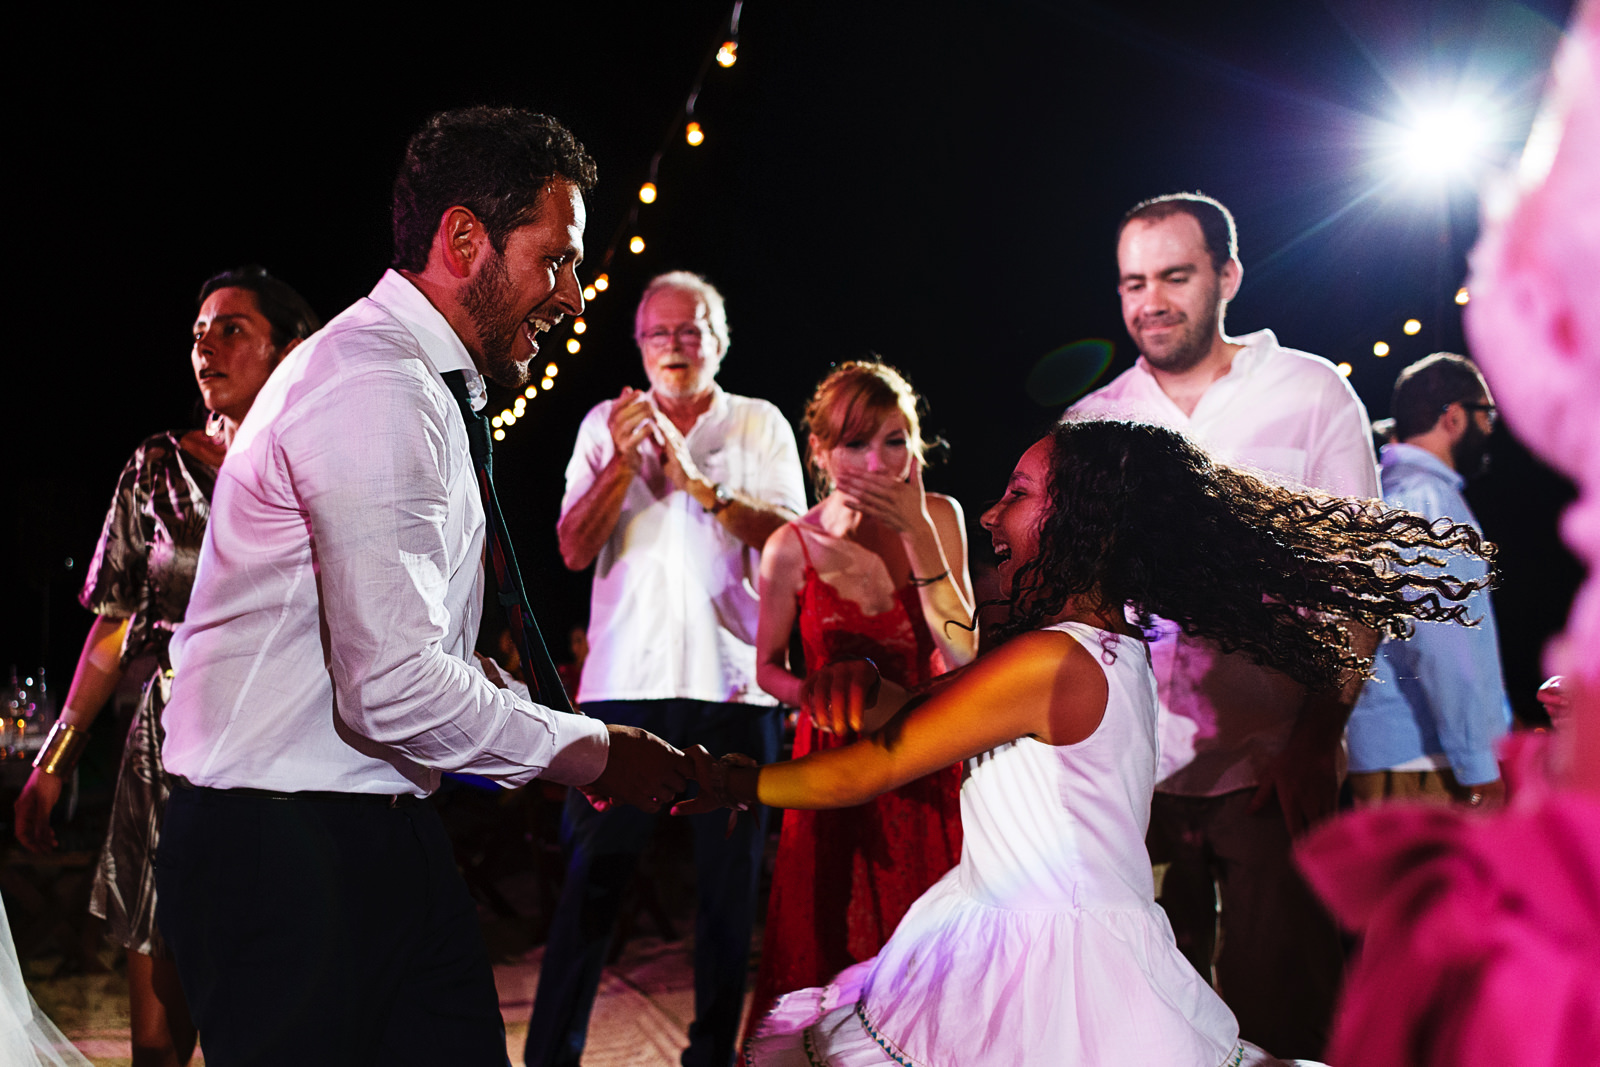 Groom dances with a young girl